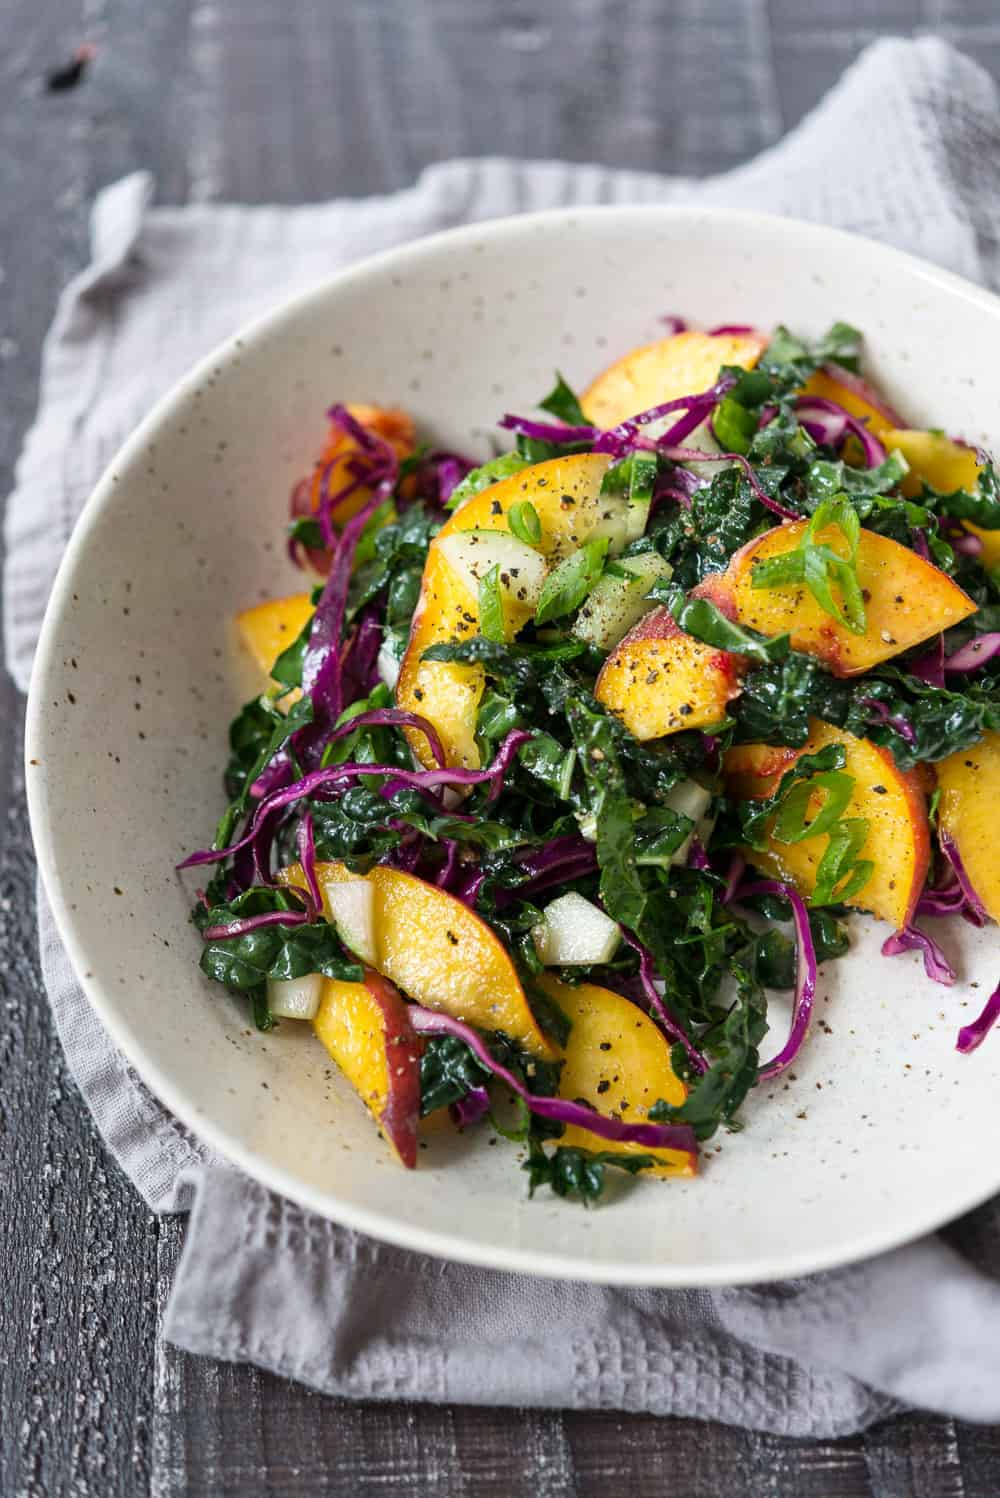 peach salad with kale